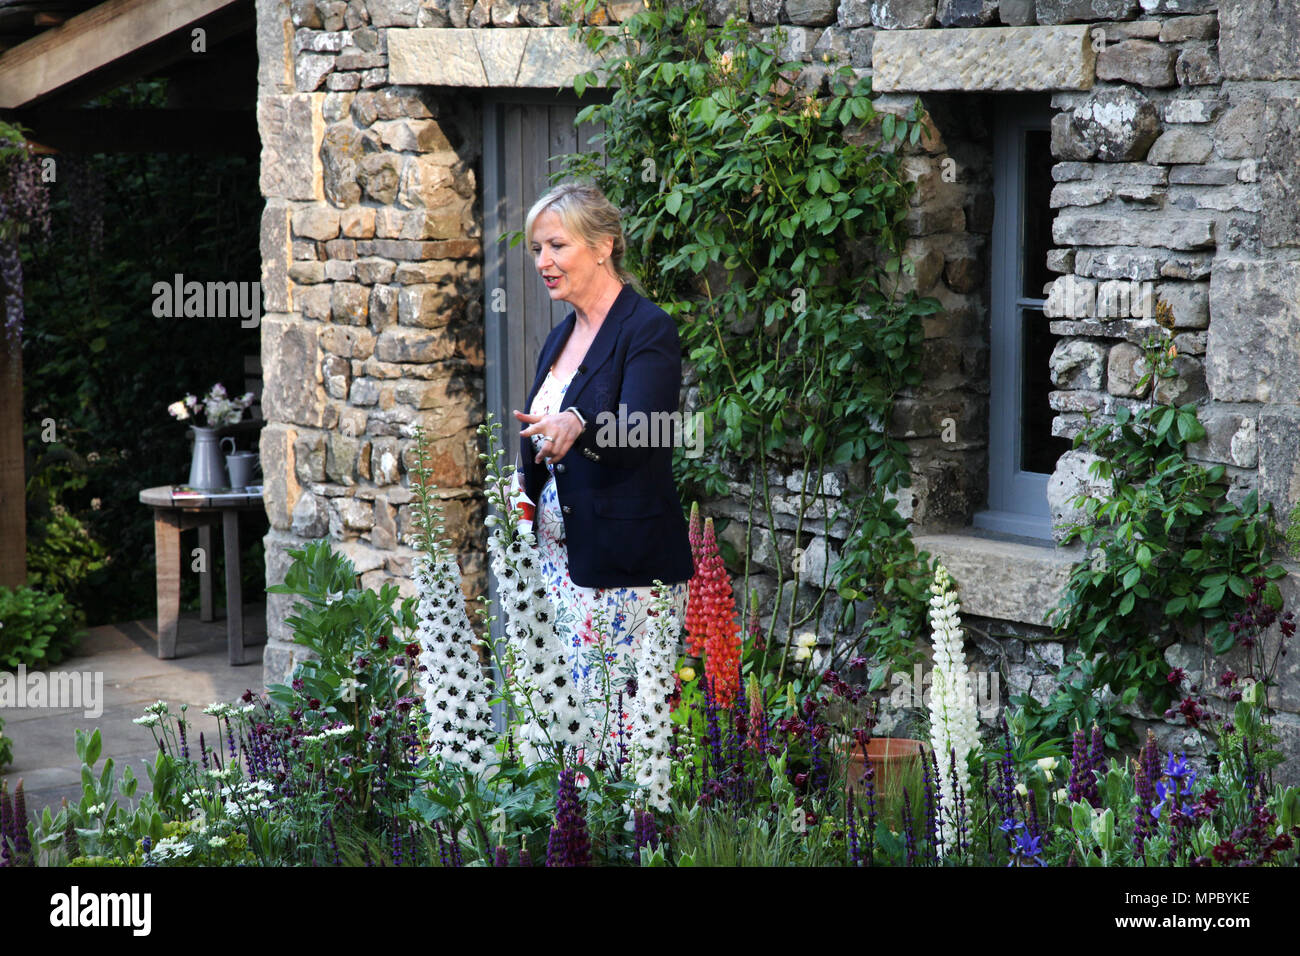 Chelsea, London, UK. 21st May, 2018. Chelsea, London, UK. 21st May 2018. Carol Kirkwood presenting the Live Weather forecast on the morning of 21st May 2018 from Welcome to Yorkshire's Garden at Chelsea Flower Show Credit: Jenny Lilly/Alamy Live News - Stock Image